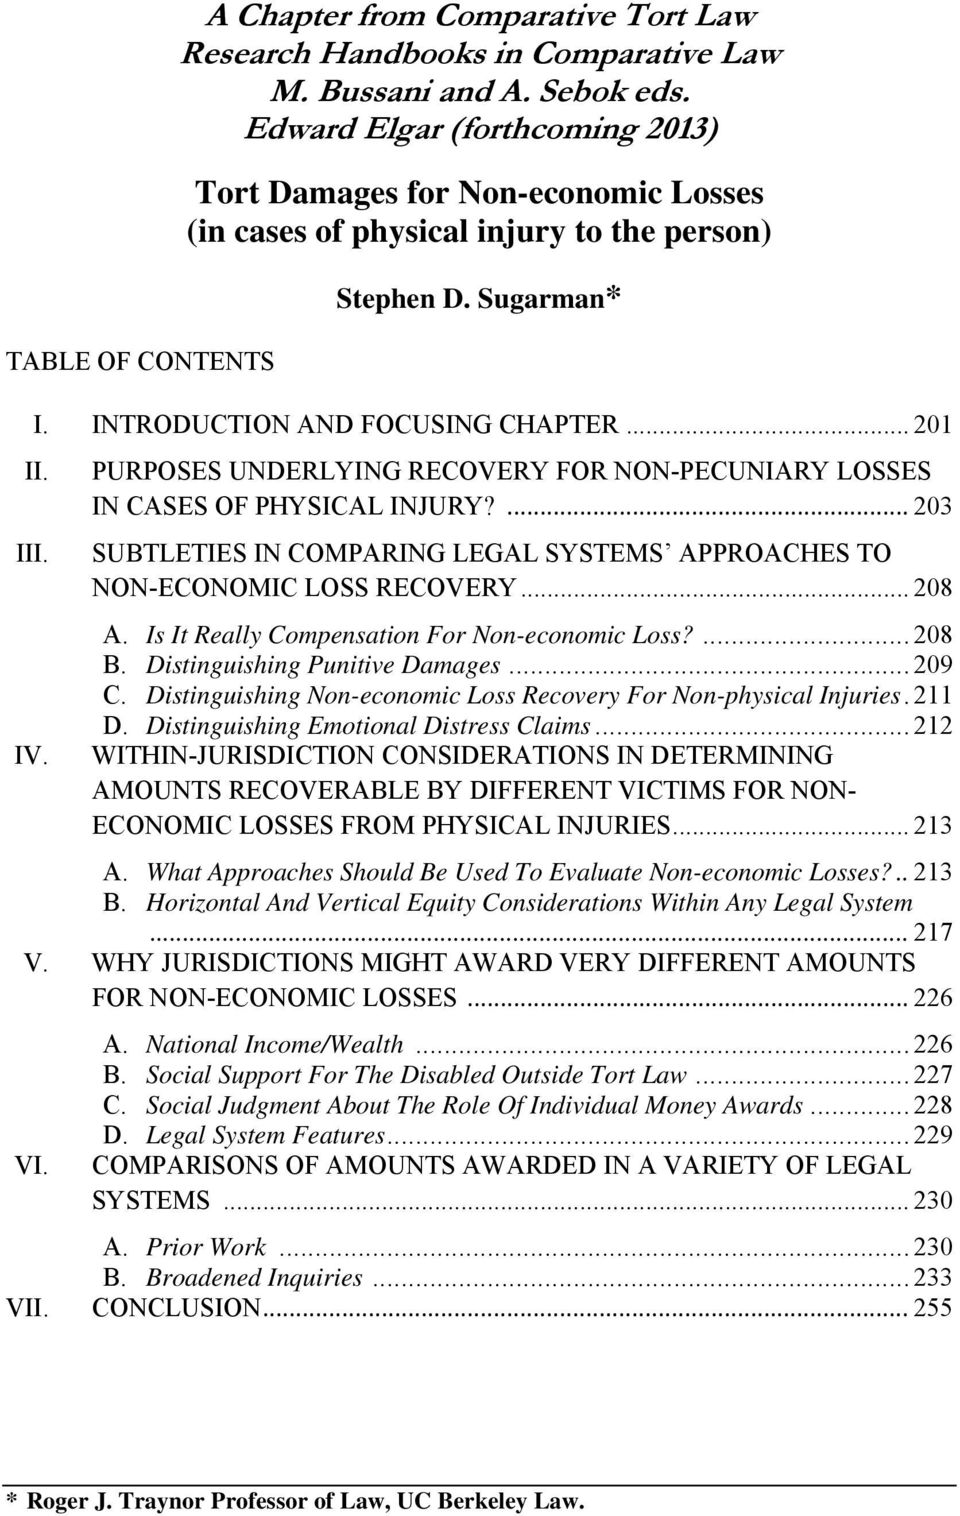 PURPOSES UNDERLYING RECOVERY FOR NON-PECUNIARY LOSSES IN CASES OF PHYSICAL INJURY?... 203 SUBTLETIES IN COMPARING LEGAL SYSTEMS APPROACHES TO NON-ECONOMIC LOSS RECOVERY... 208 A.